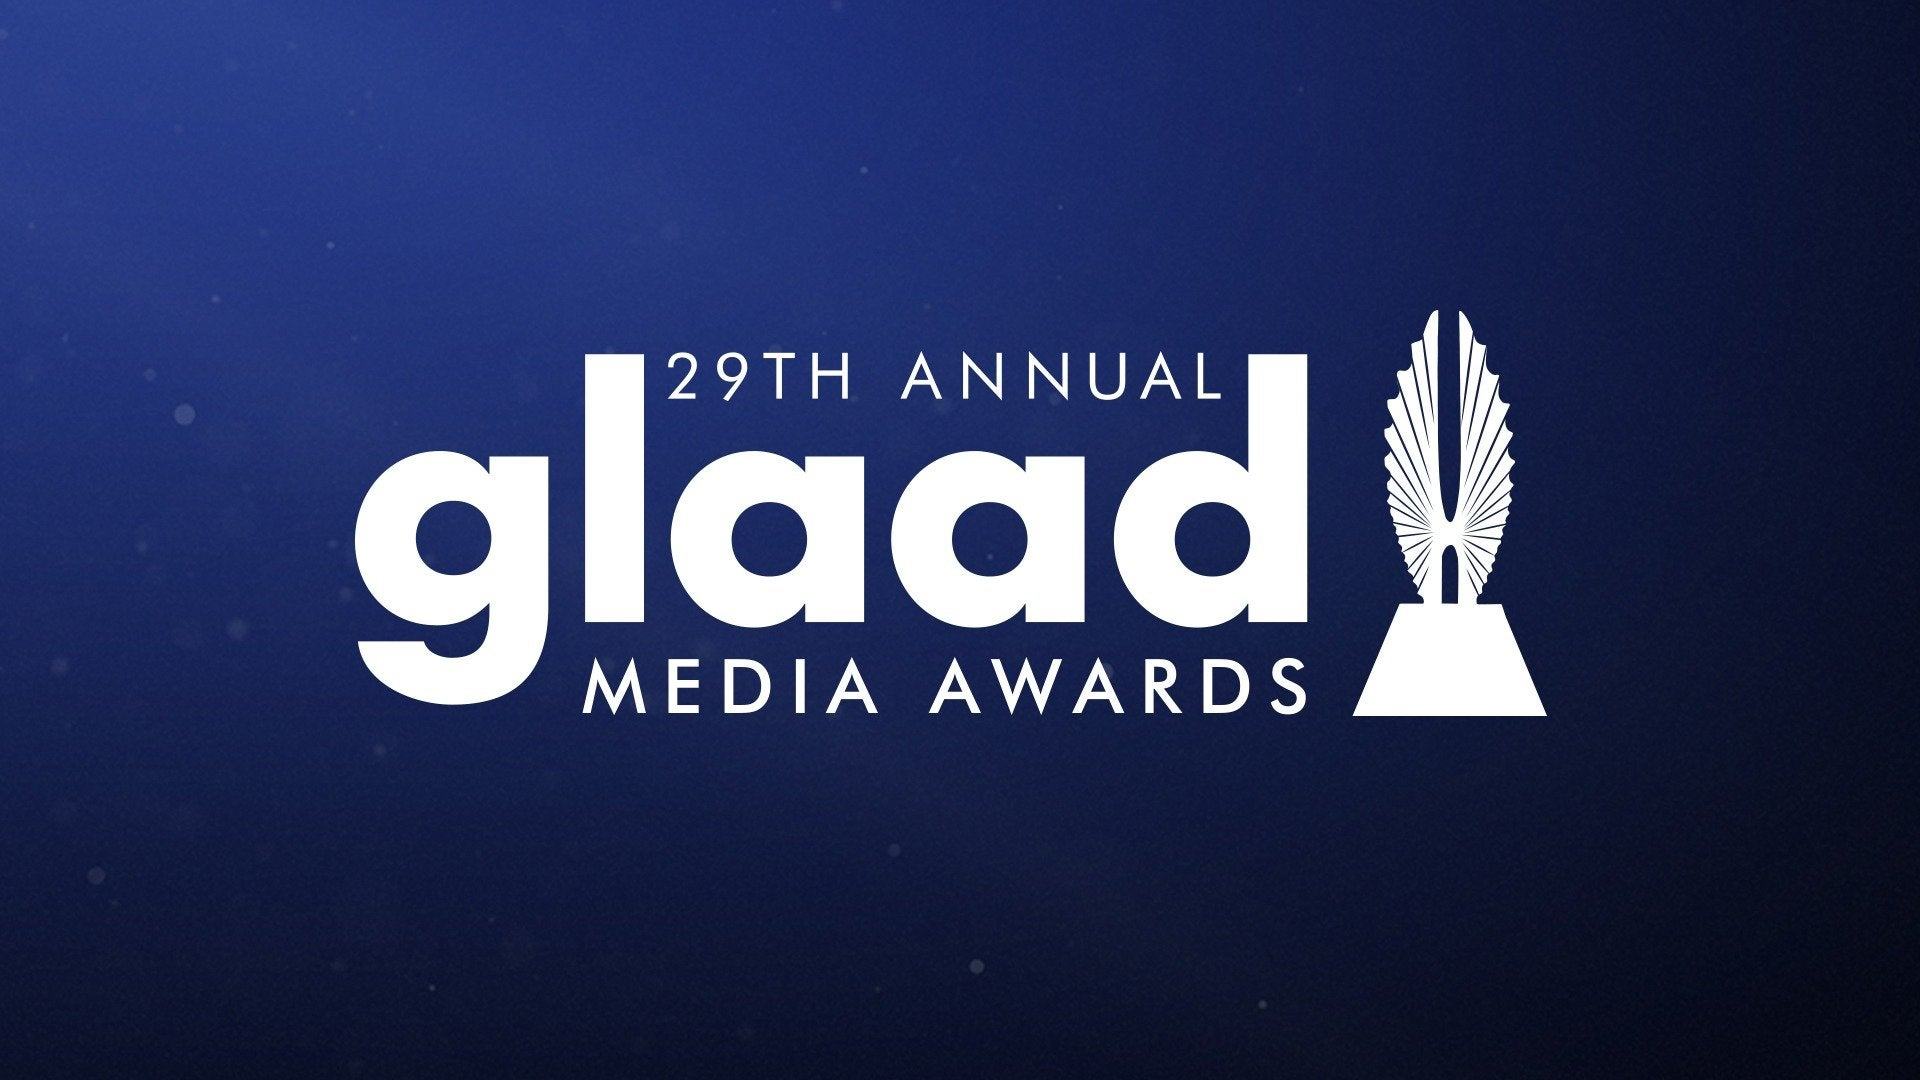 The 29th Annual GLAAD Media Awards